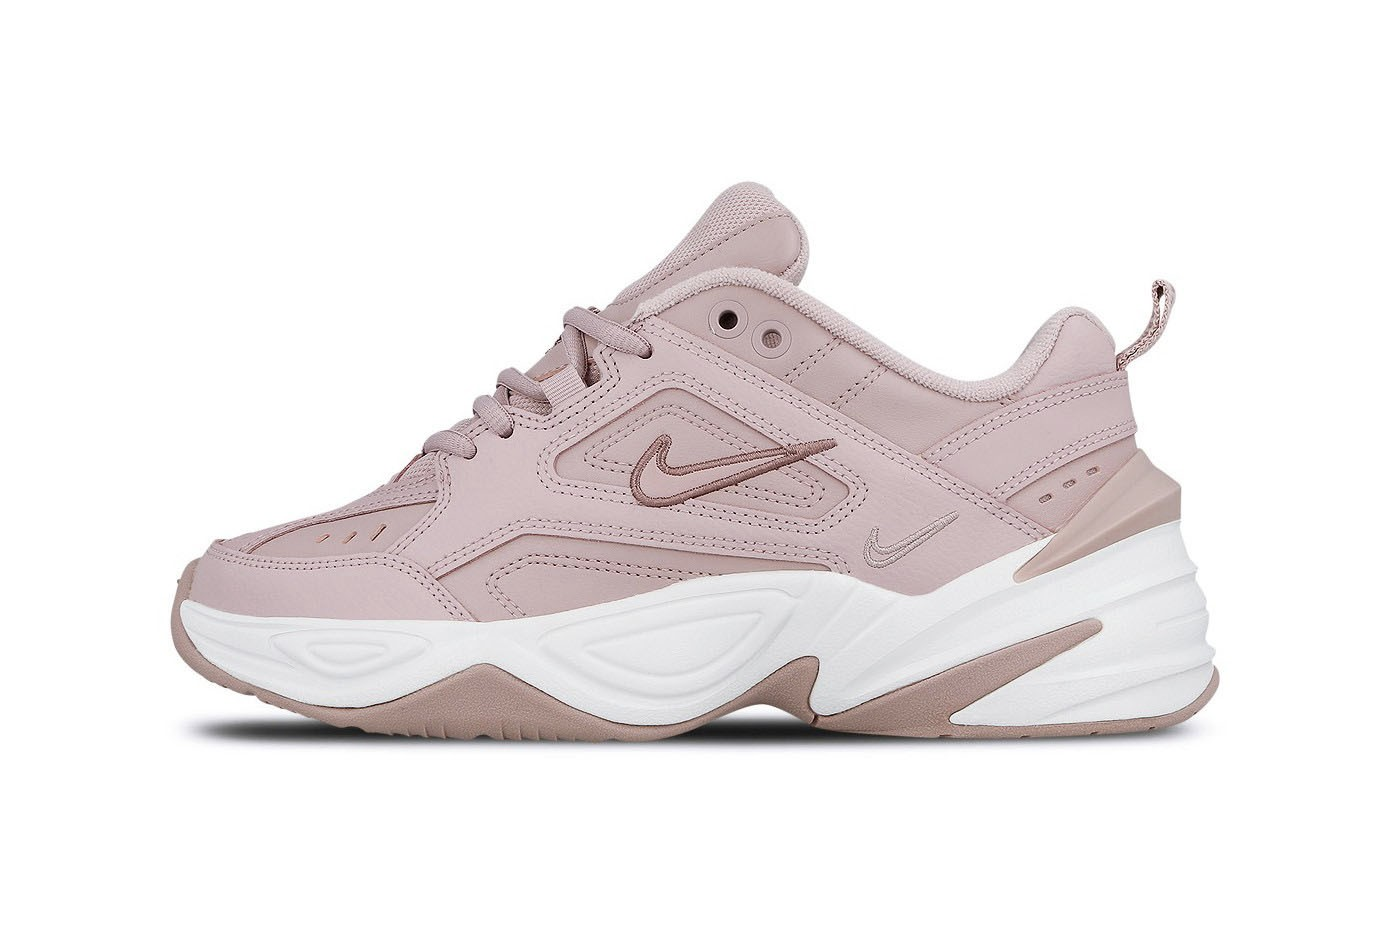 Best Nike M2K Tekno Releases This Spring Sneaker Red White Pink Blue Black Where To Buy Nike M2K Tekno Shoe Trainer